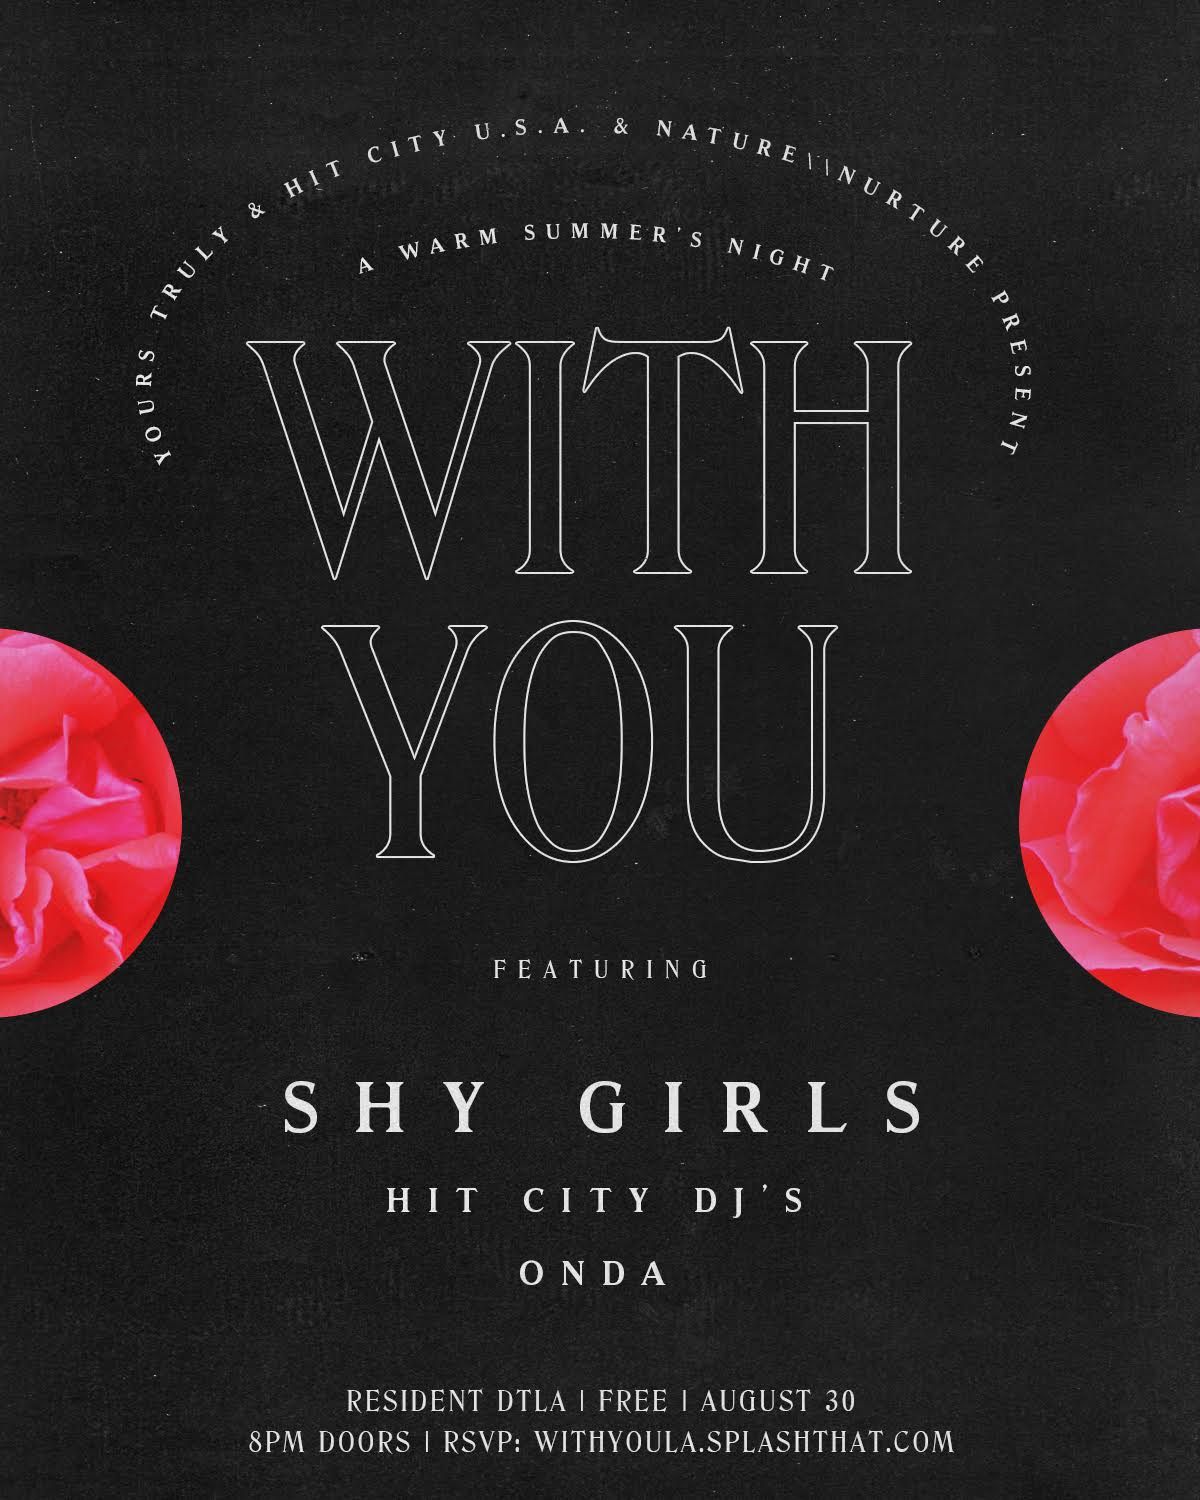 Shy Girls Live at Resident